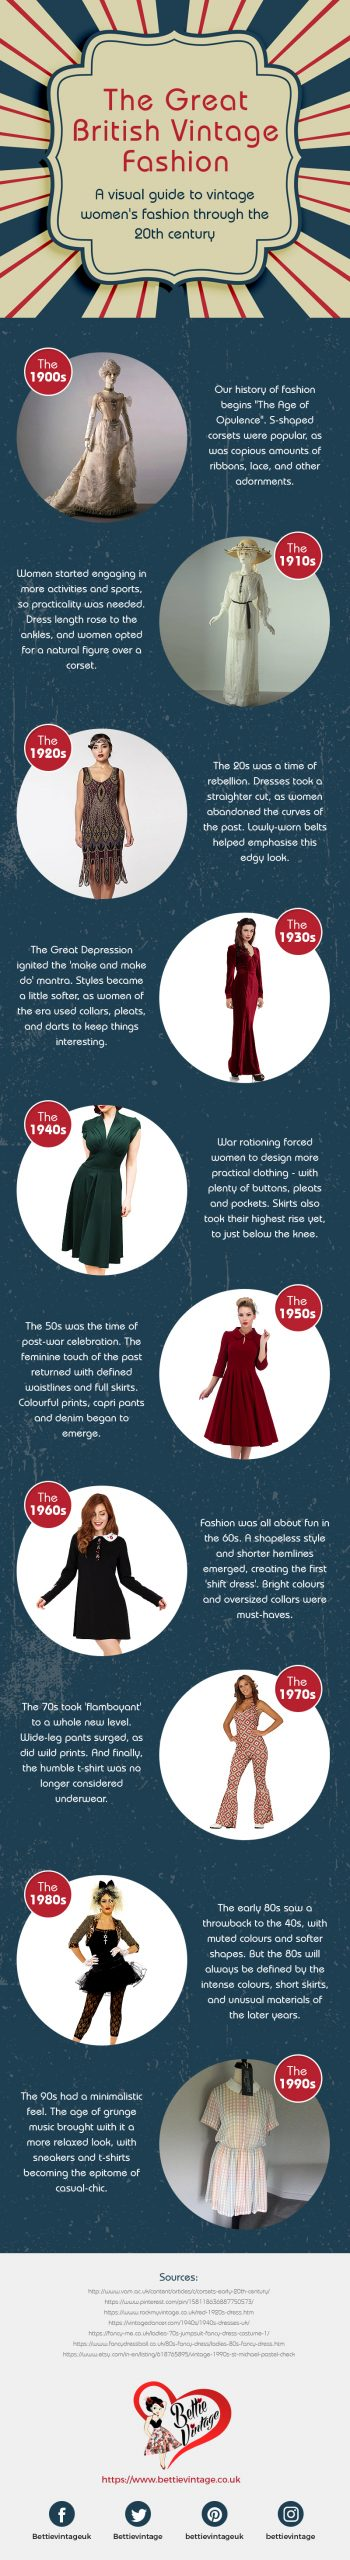 The-Great-British-Vintage-Fashion